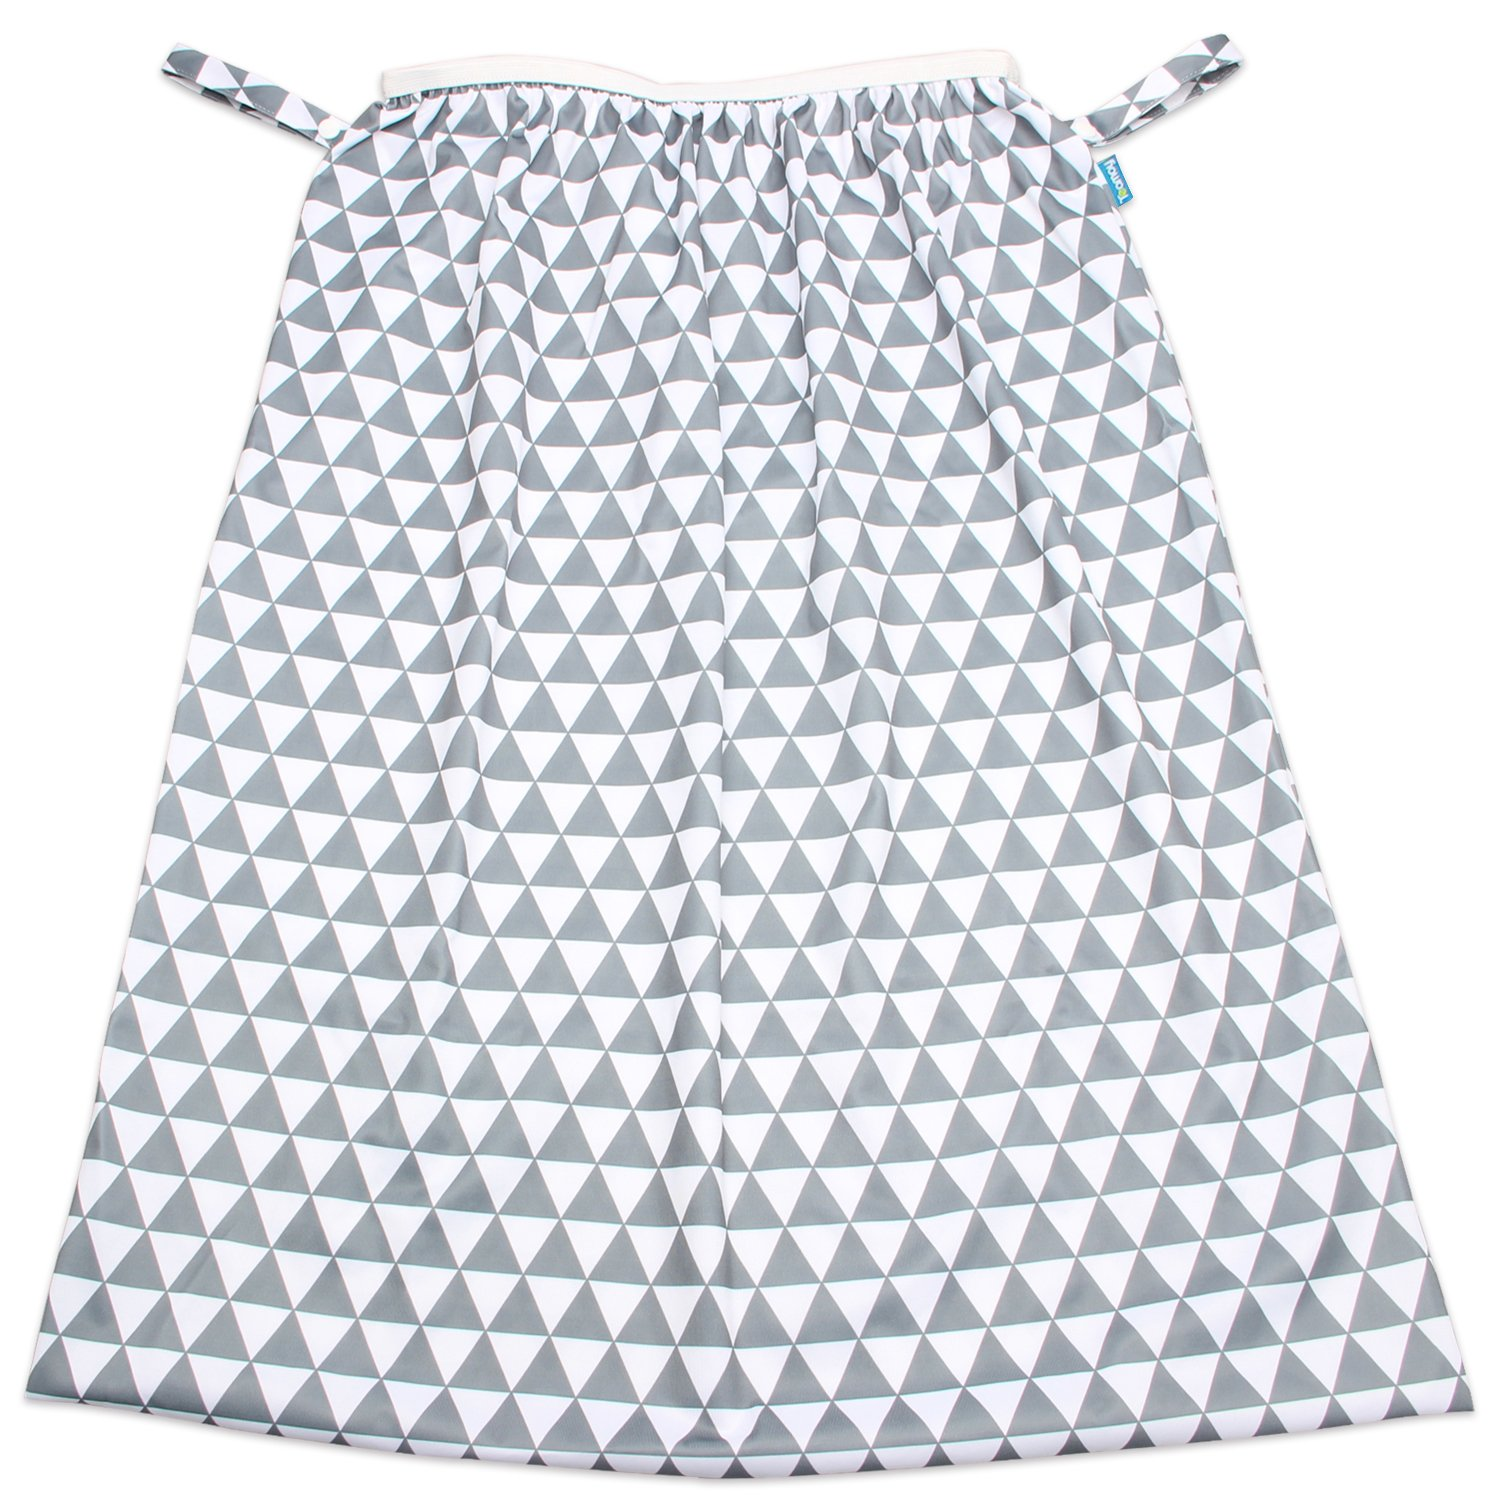 Teamoy Reusable Pail Liner for Cloth Diaper/Dirty Diapers Wet Bag, Gray Triangle